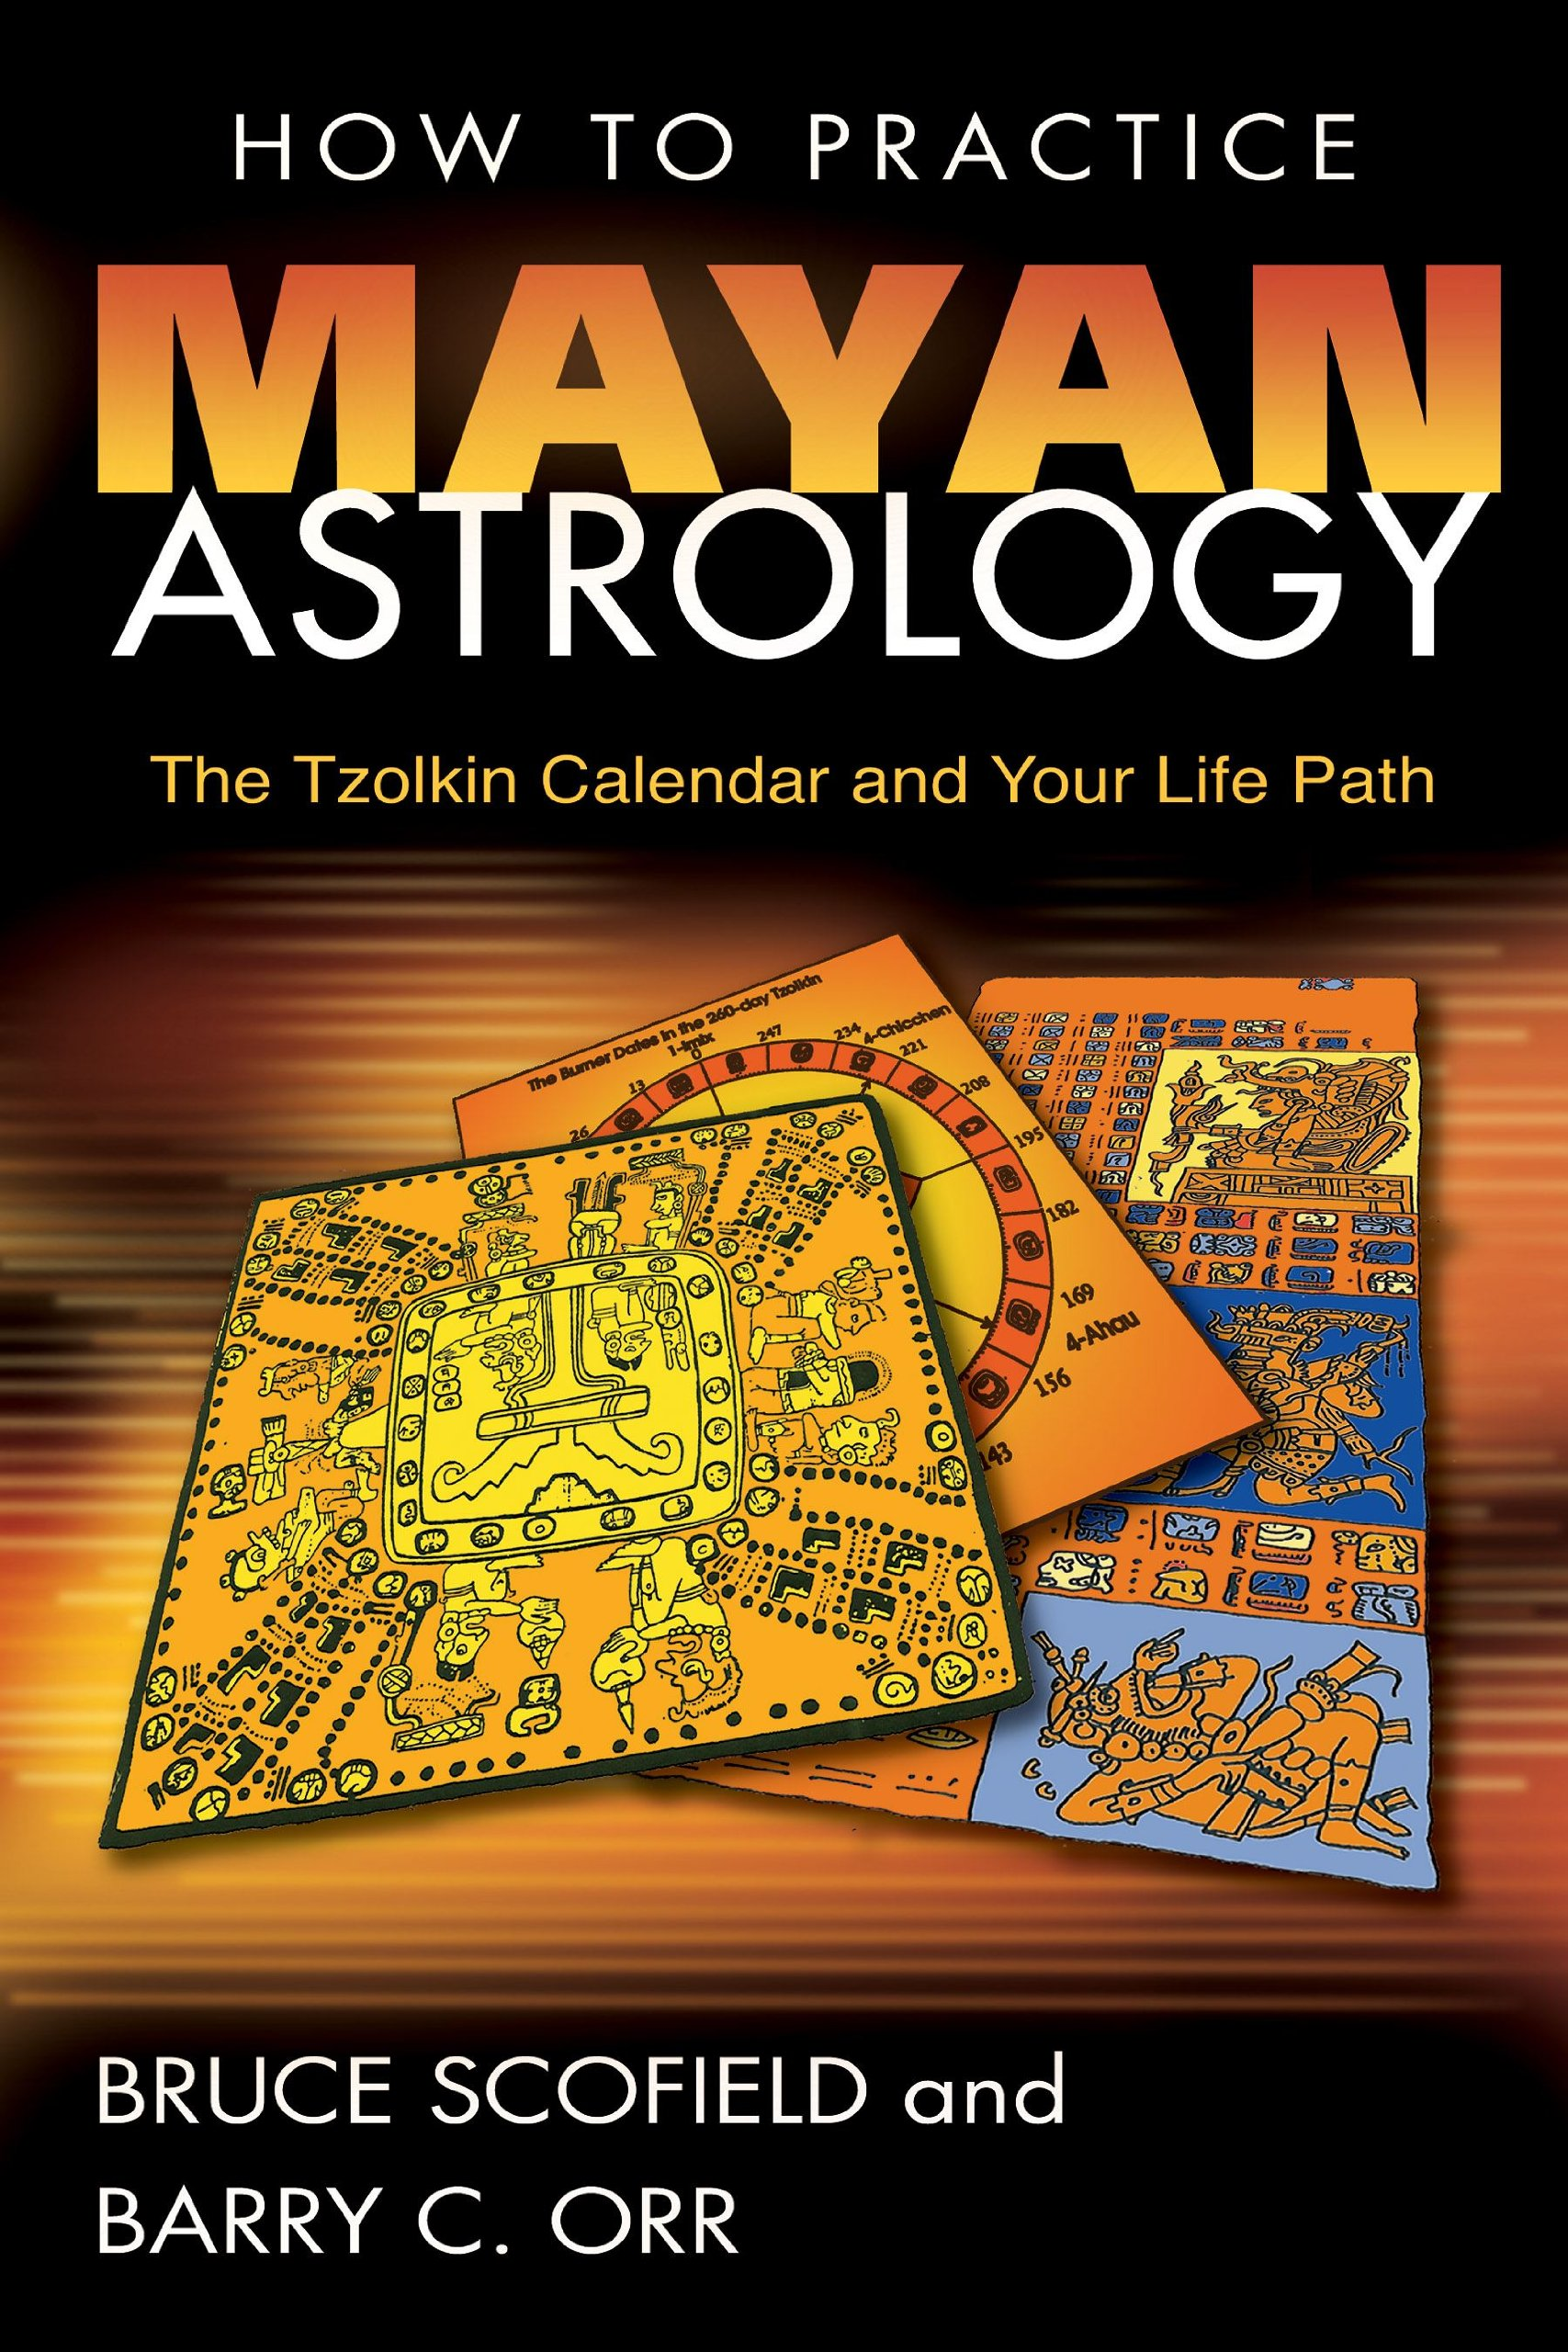 How To Practice Mayan Astrology The Tzolkin Calendar And Your Life